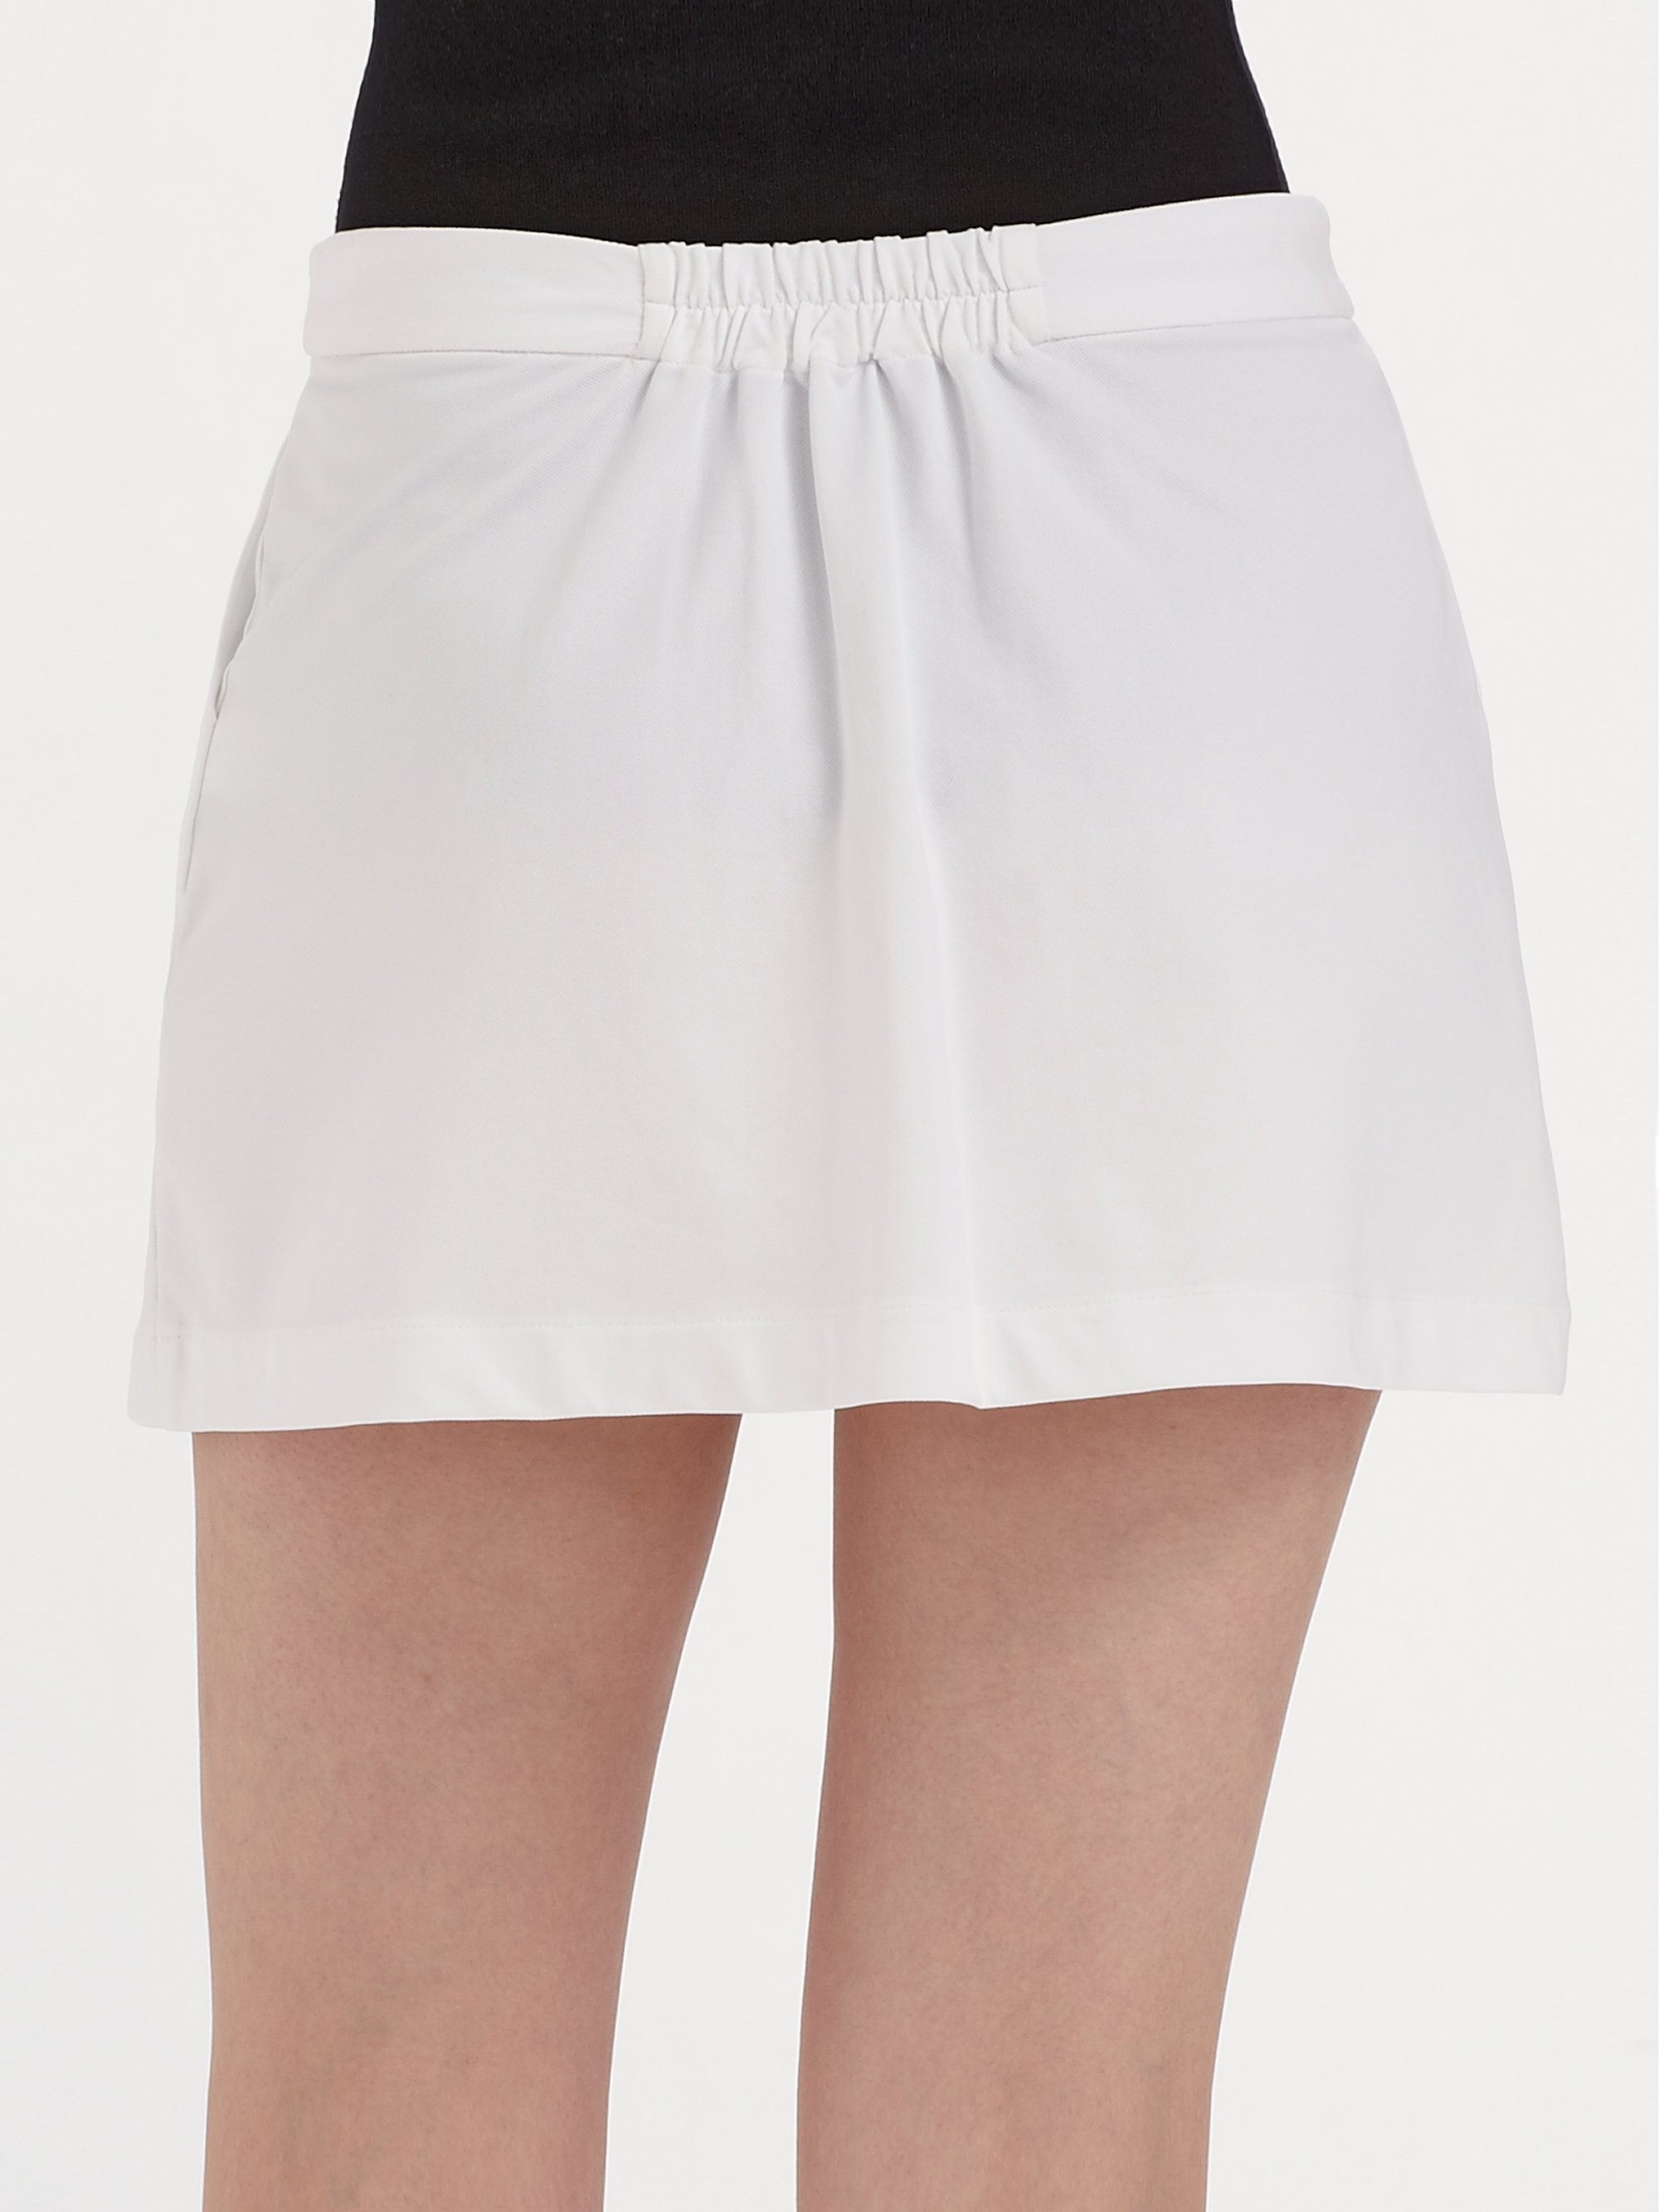 Lacoste Pique Tennis Wrap Skirt In White Lyst